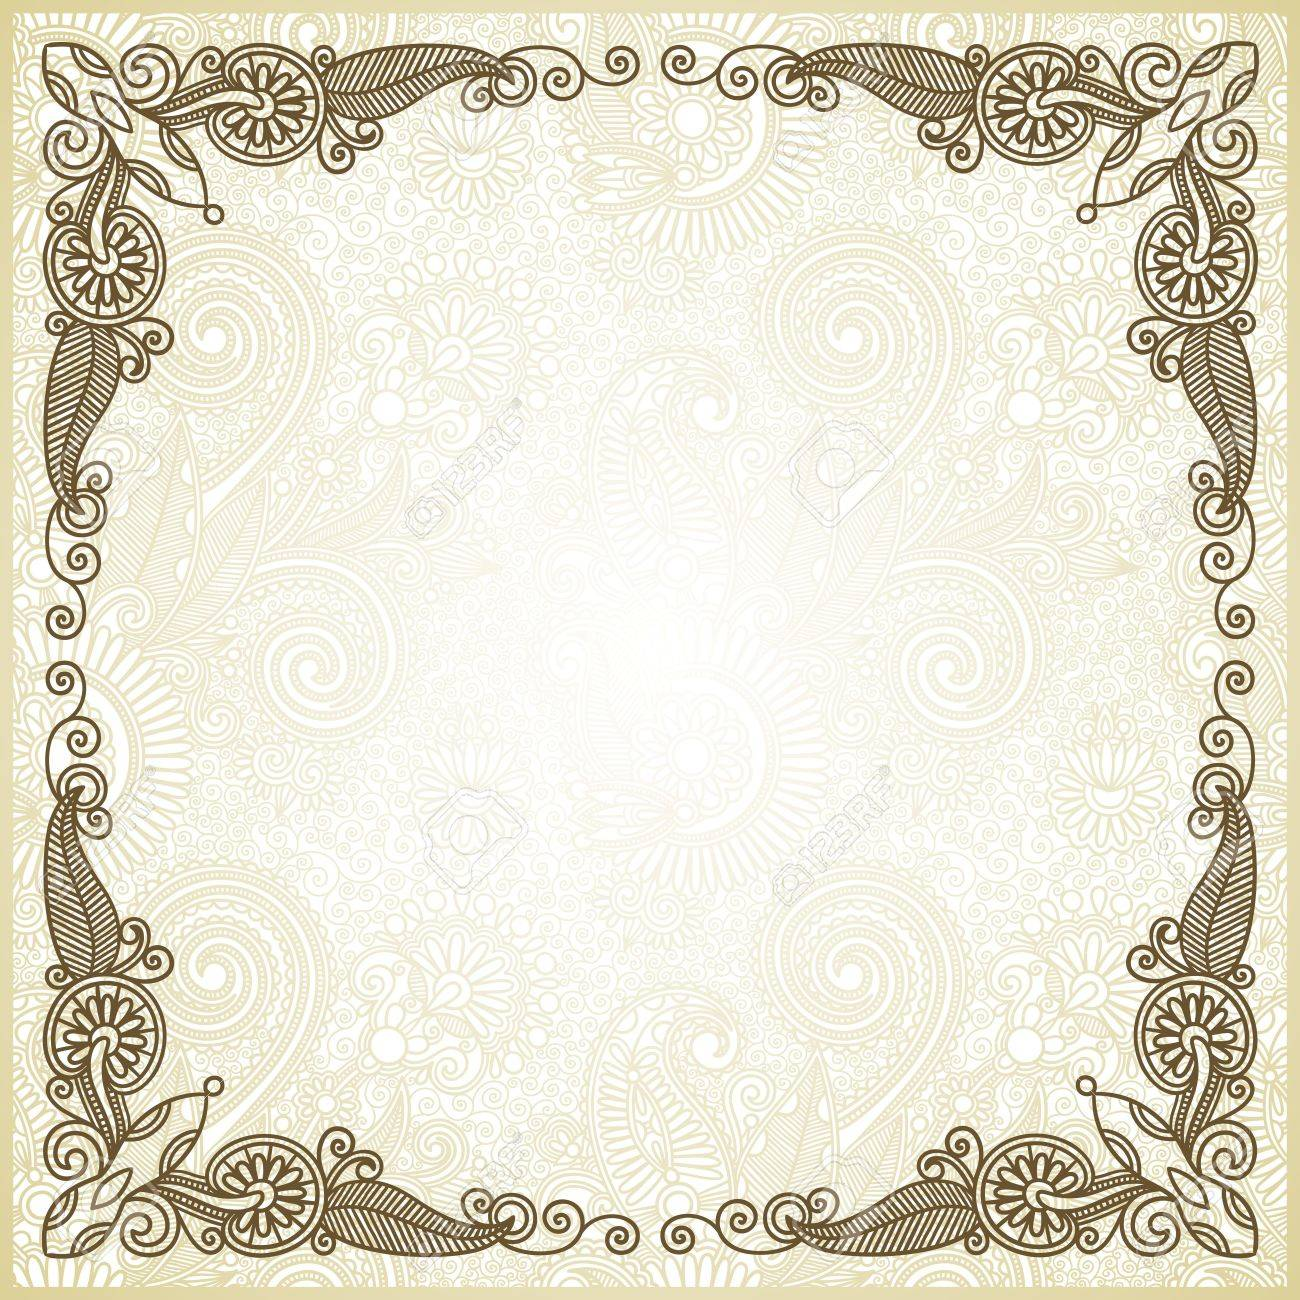 wedding certificate wedding certificate wedding certificate ornate floral frame